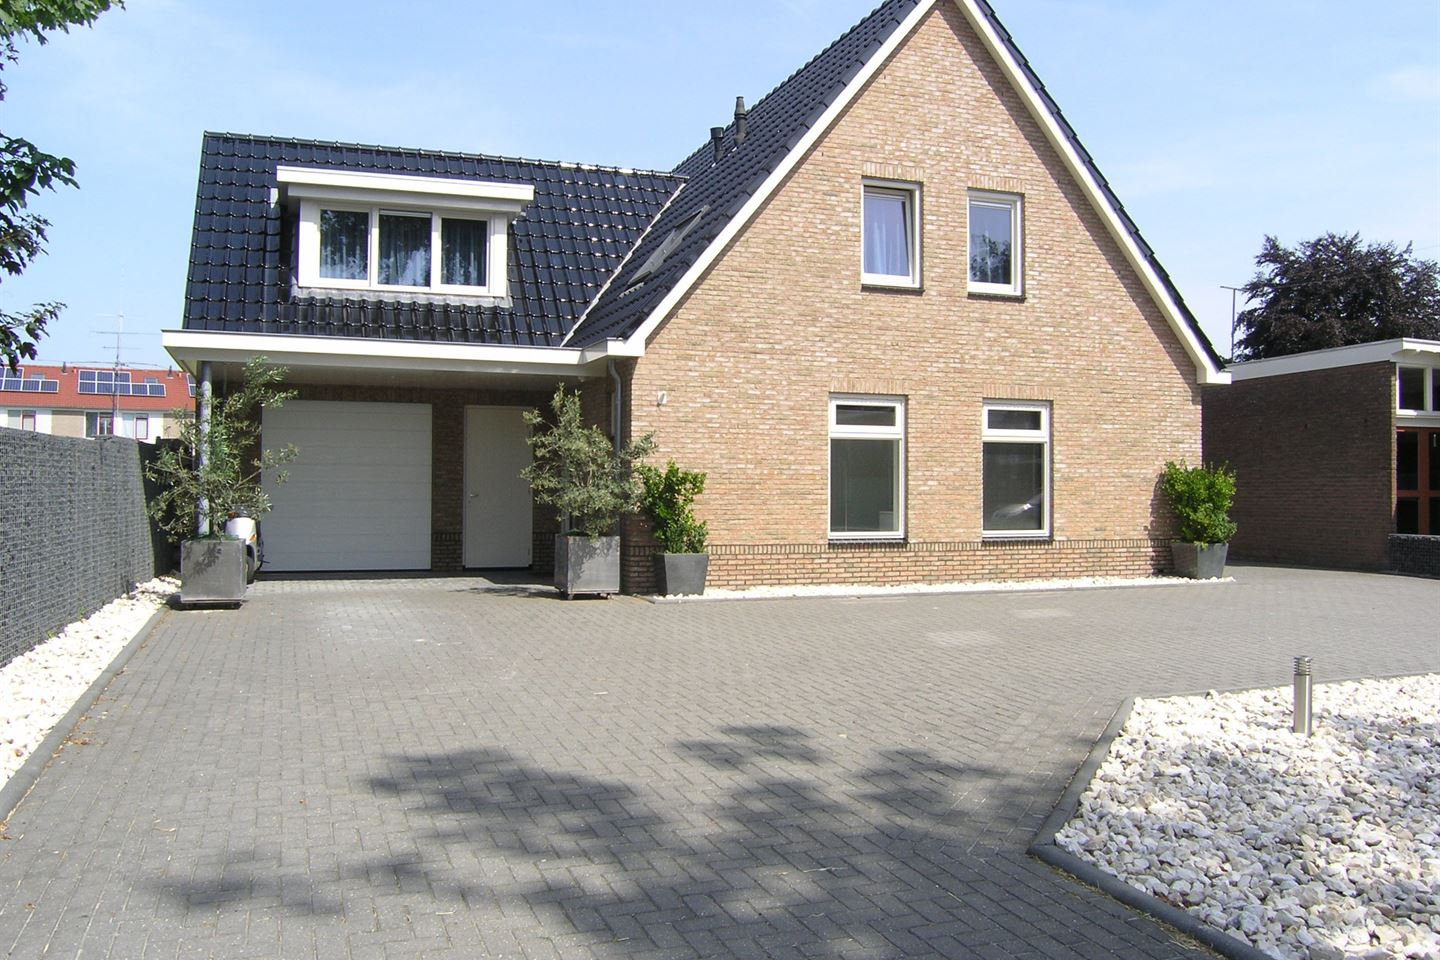 View photo 1 of Westerstraat 46